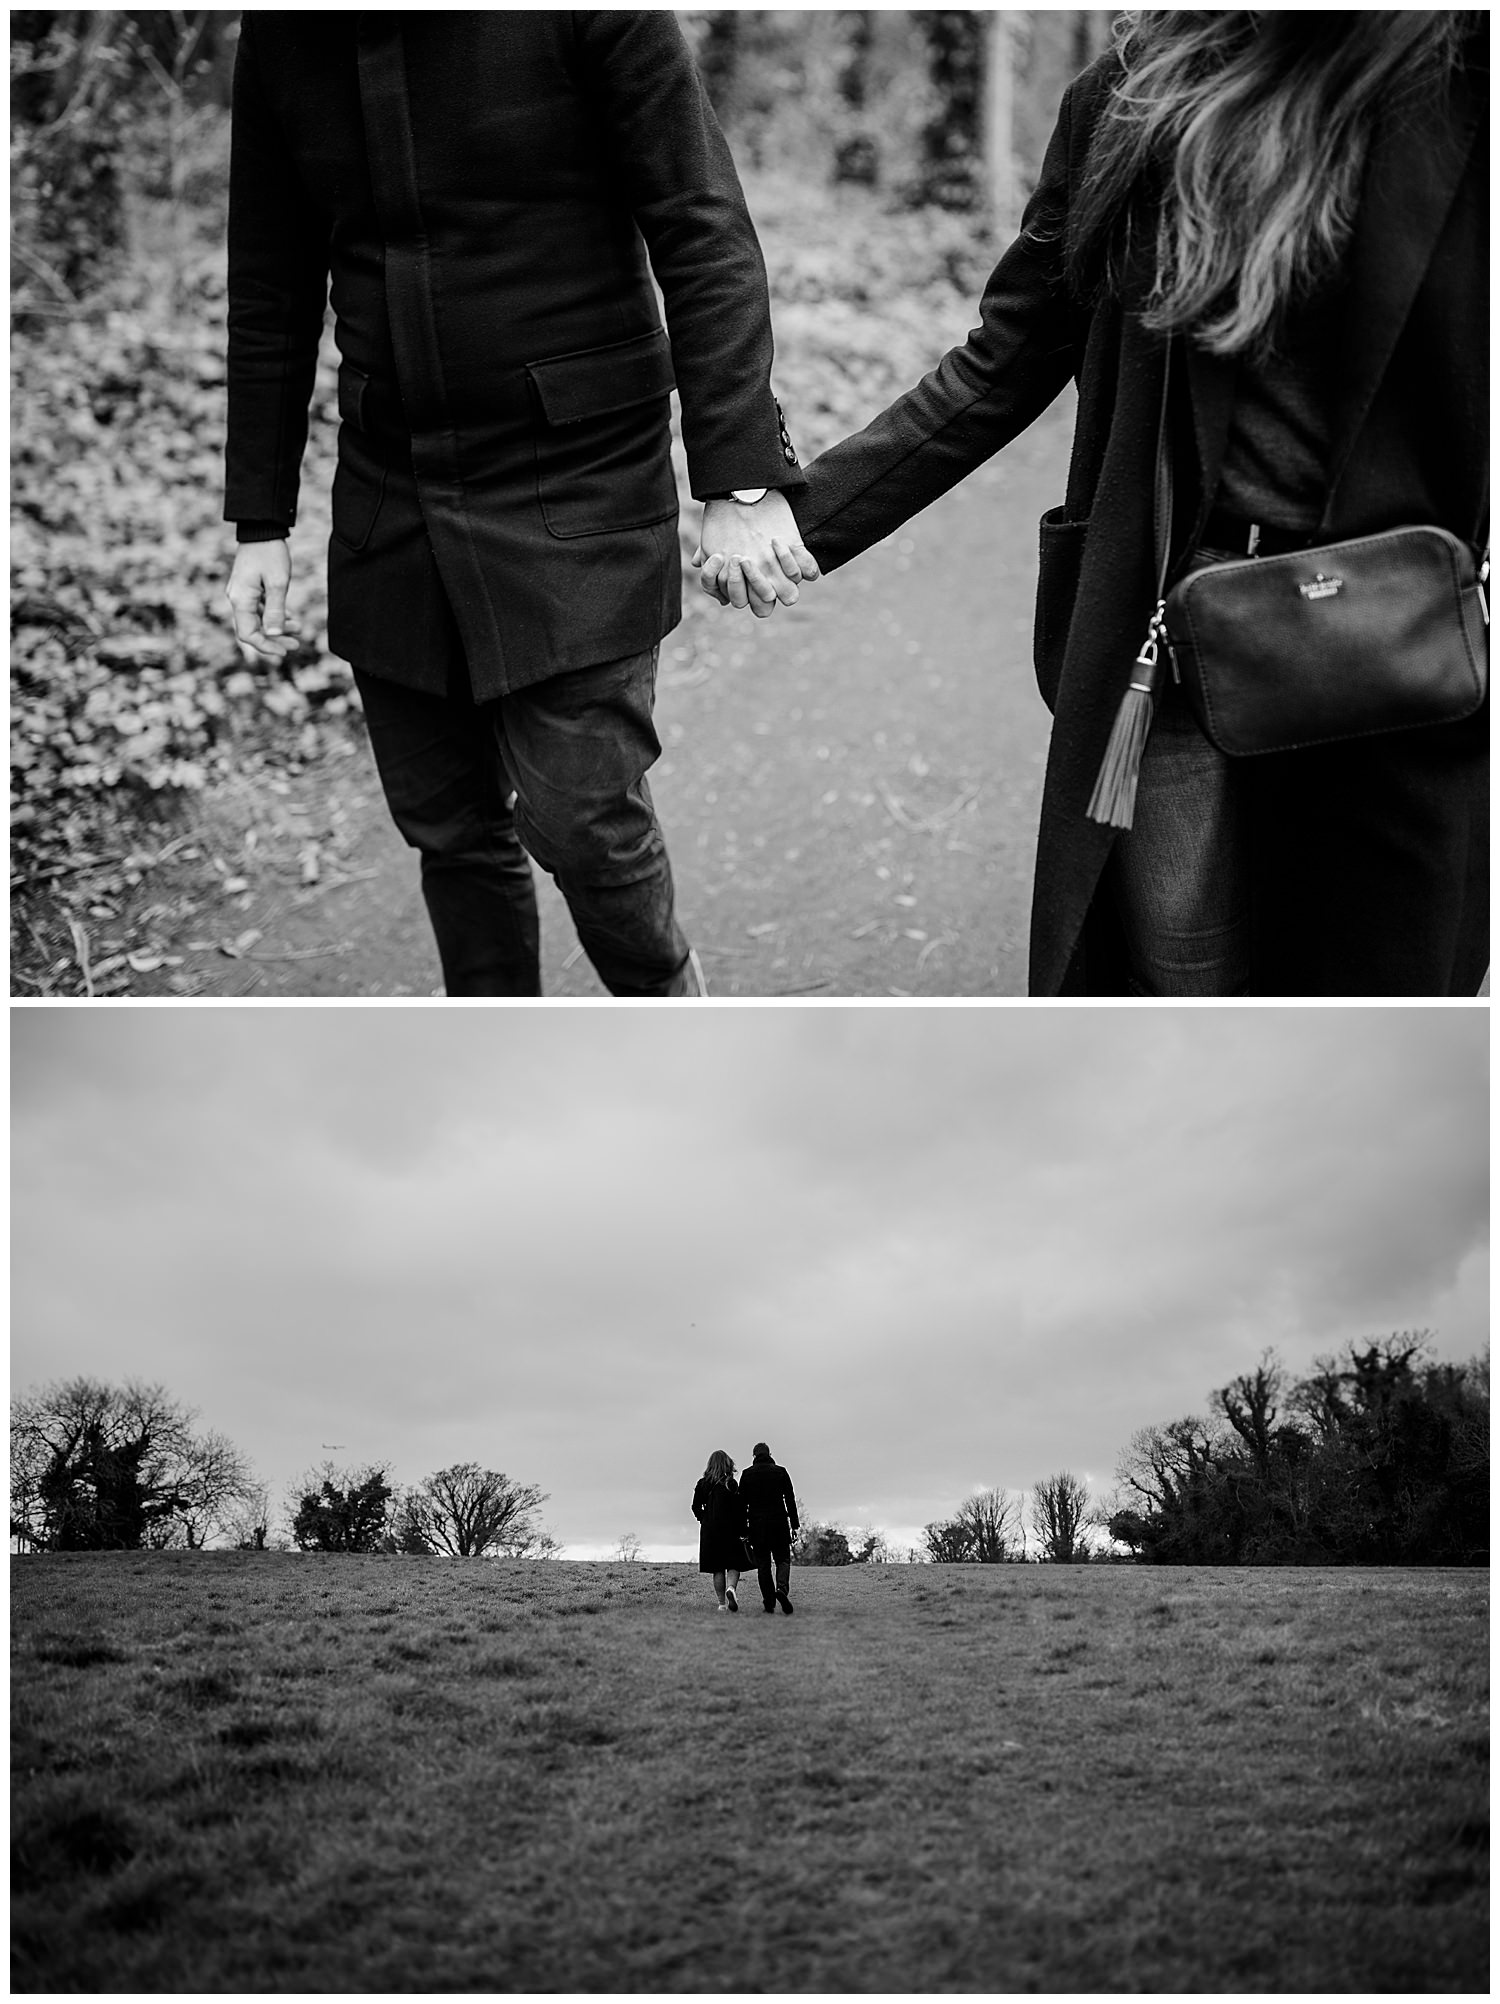 j+m_malahide_castle_engagement_session_wedding_photographer_ireland_livia_figueiredo_10.jpg